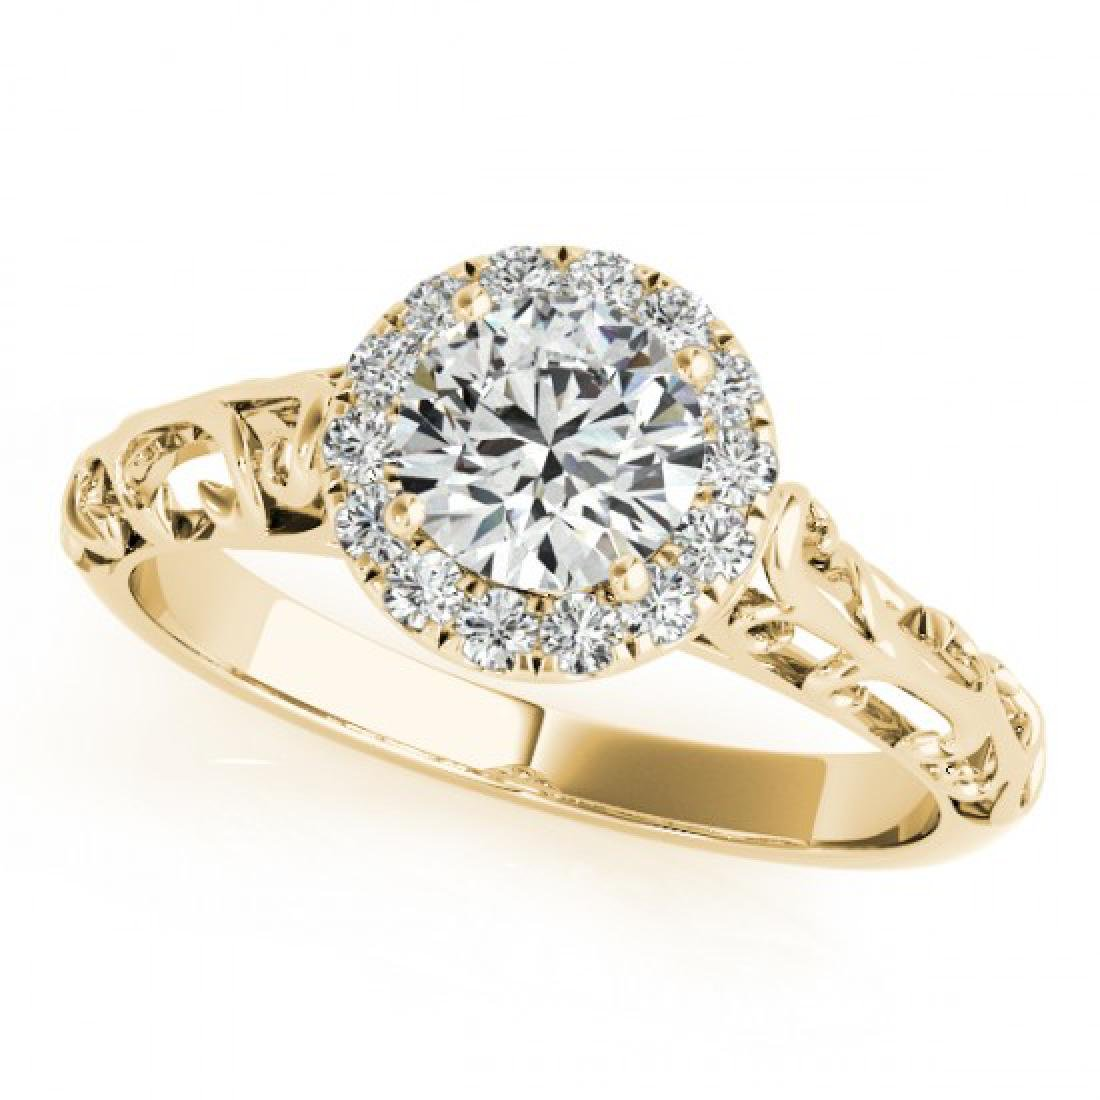 0.62 CTW Certified VS/SI Diamond Solitaire Antique Ring